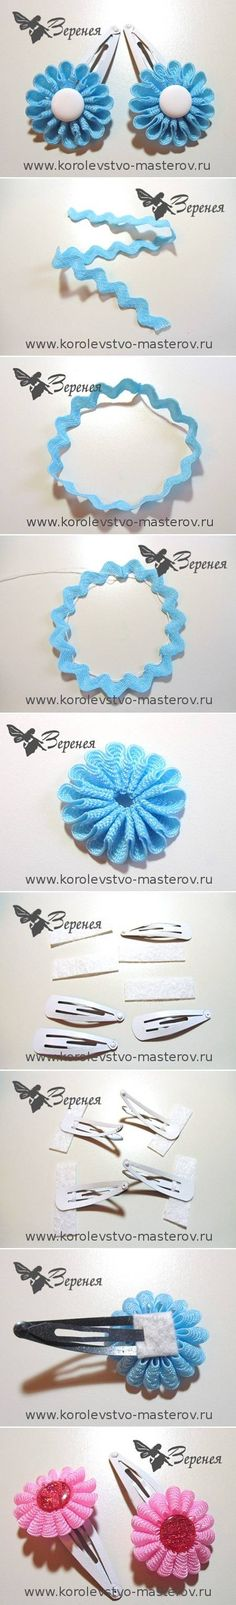 DIY Braid Flower DIY Projects | UsefulDIY.com